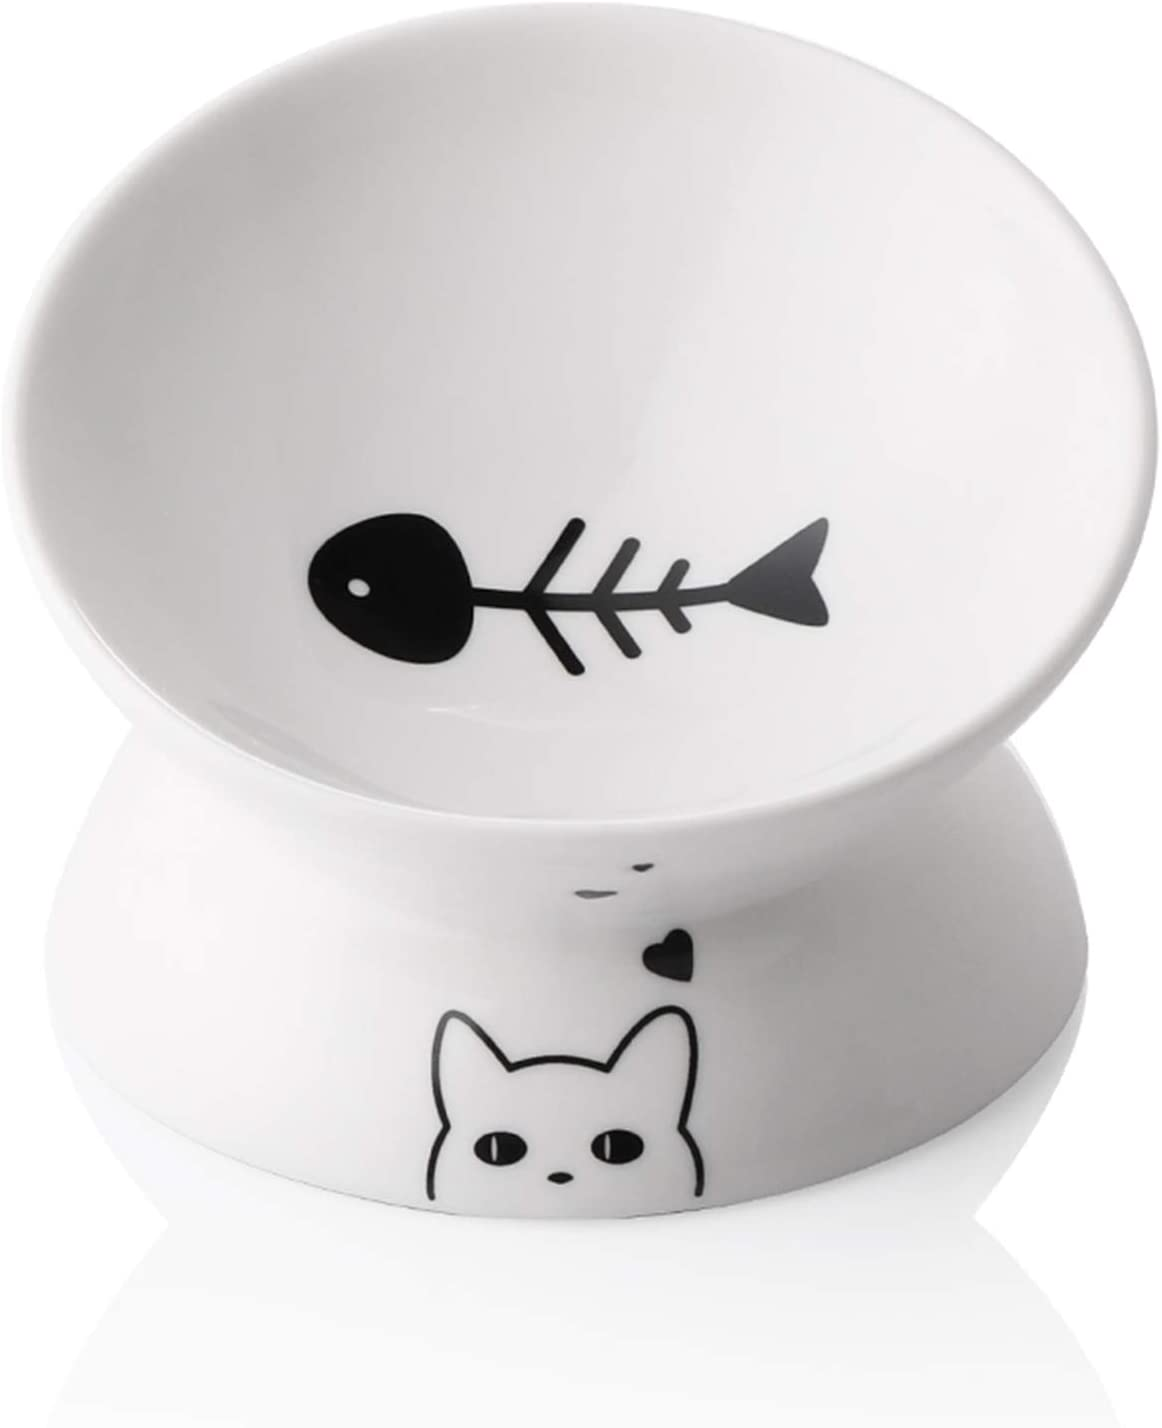 Sweejar Ceramic Raised Cat Bowls, Slanted Cat Dish Food or Water Bowls, Elevated Porcelain Pet Feeder Bowl Protect Cat's Spine, Stress Free, Backflow Prevention